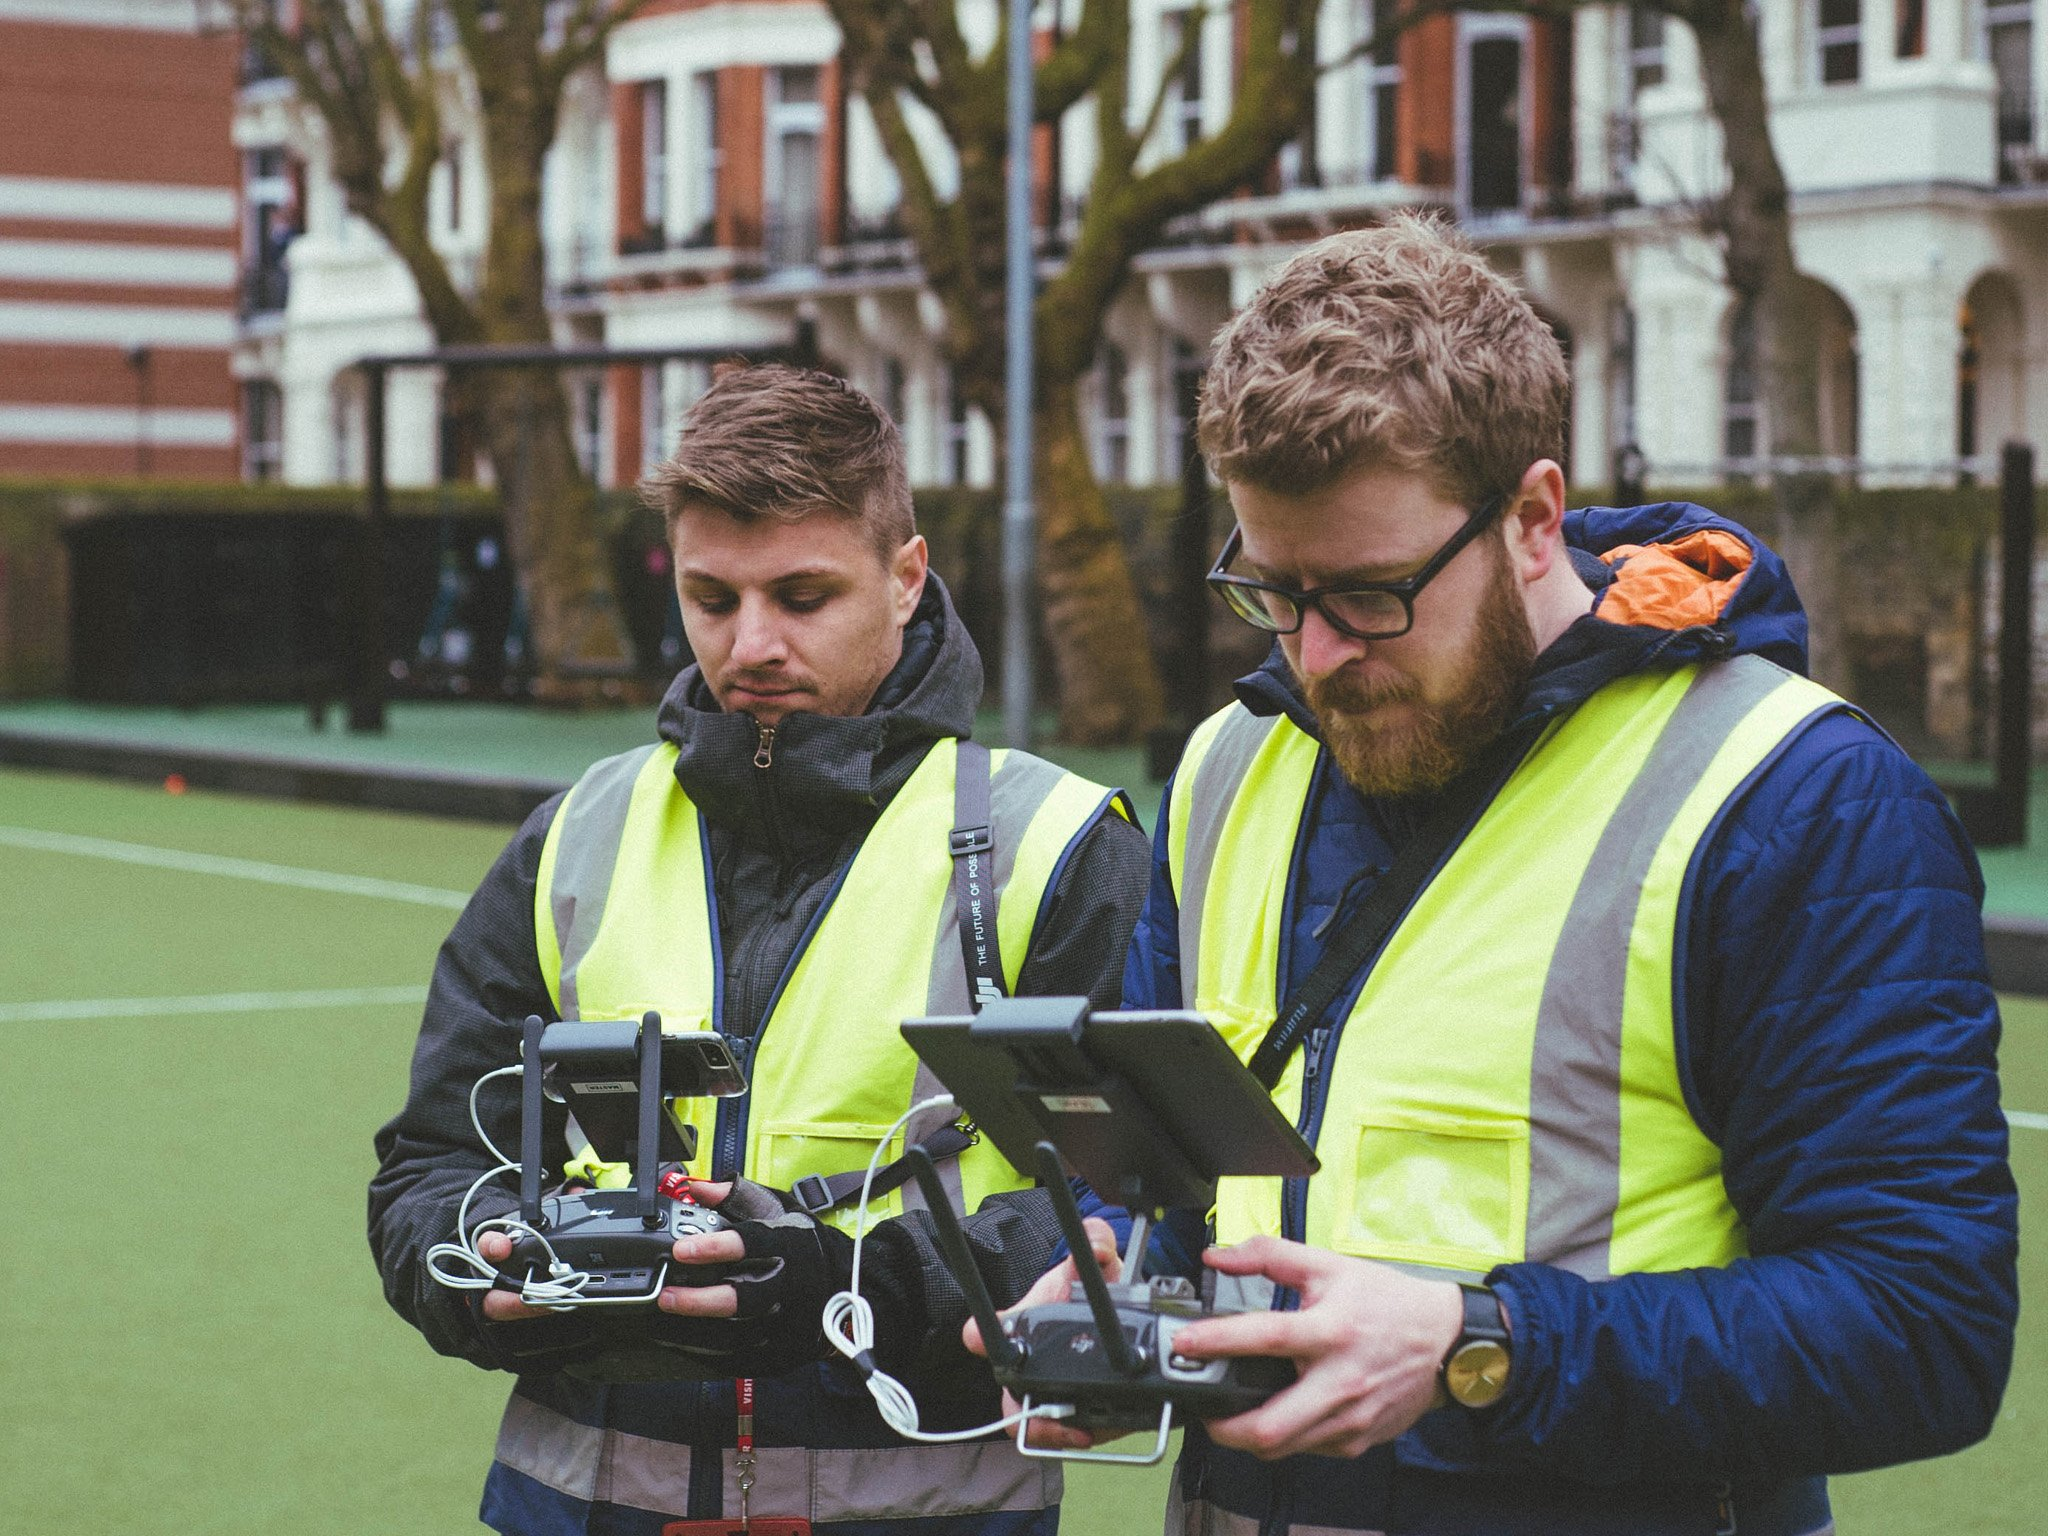 DroneScope crew operating the Inspire 2